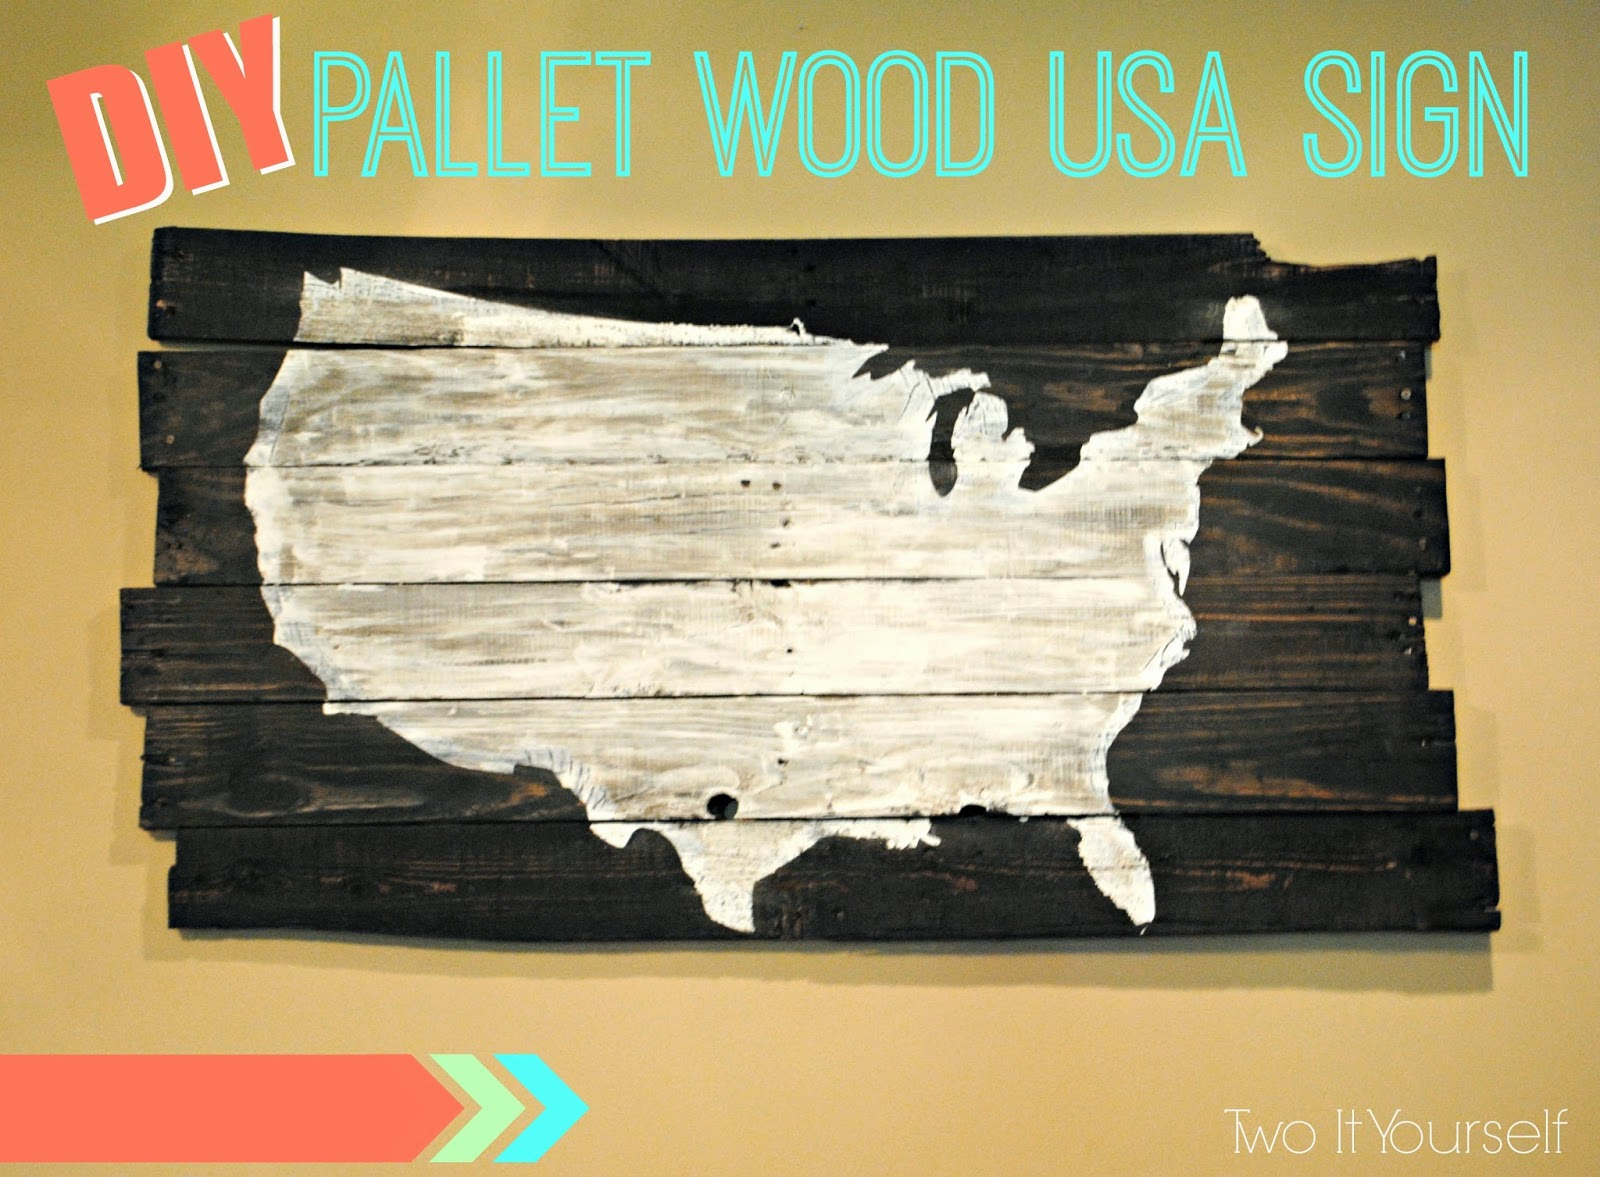 Two it yourself oversized pallet wood usa sign and a giveaway its always a good day at two it yourself when i have an awesome and easy knockoff project for you and a giveaway solutioingenieria Images